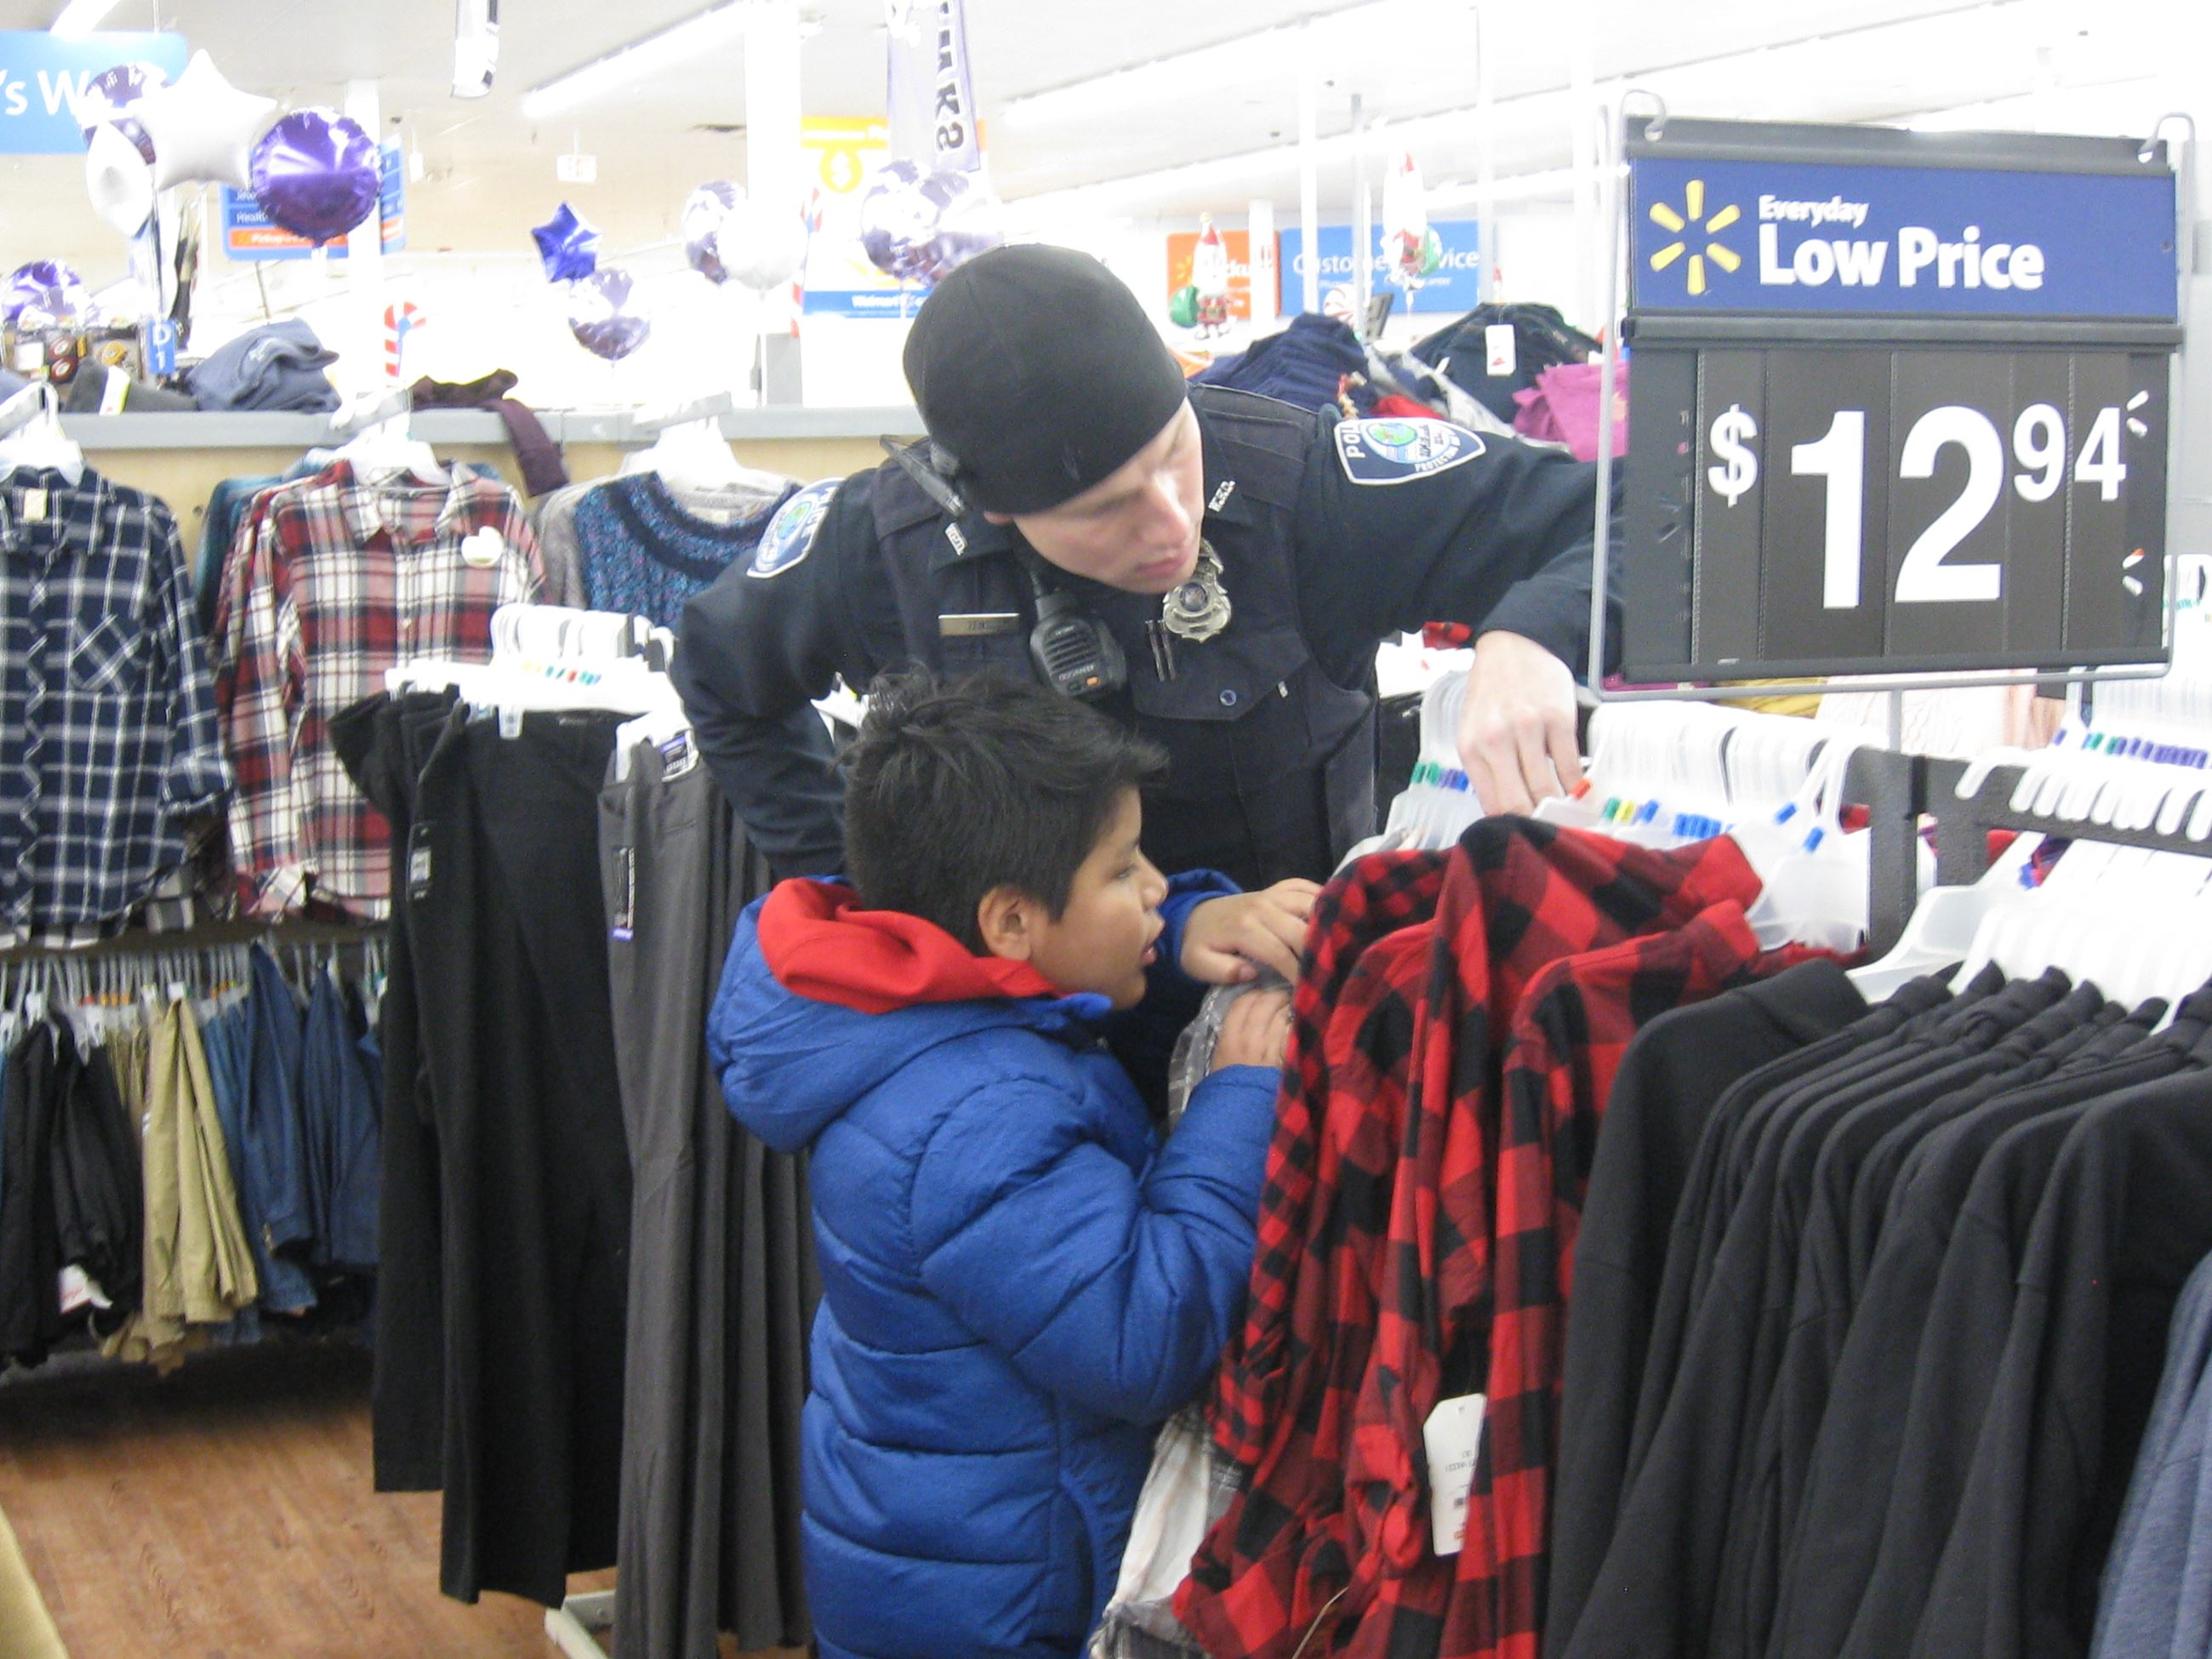 Police Officer Shopping for Clothes with a Child